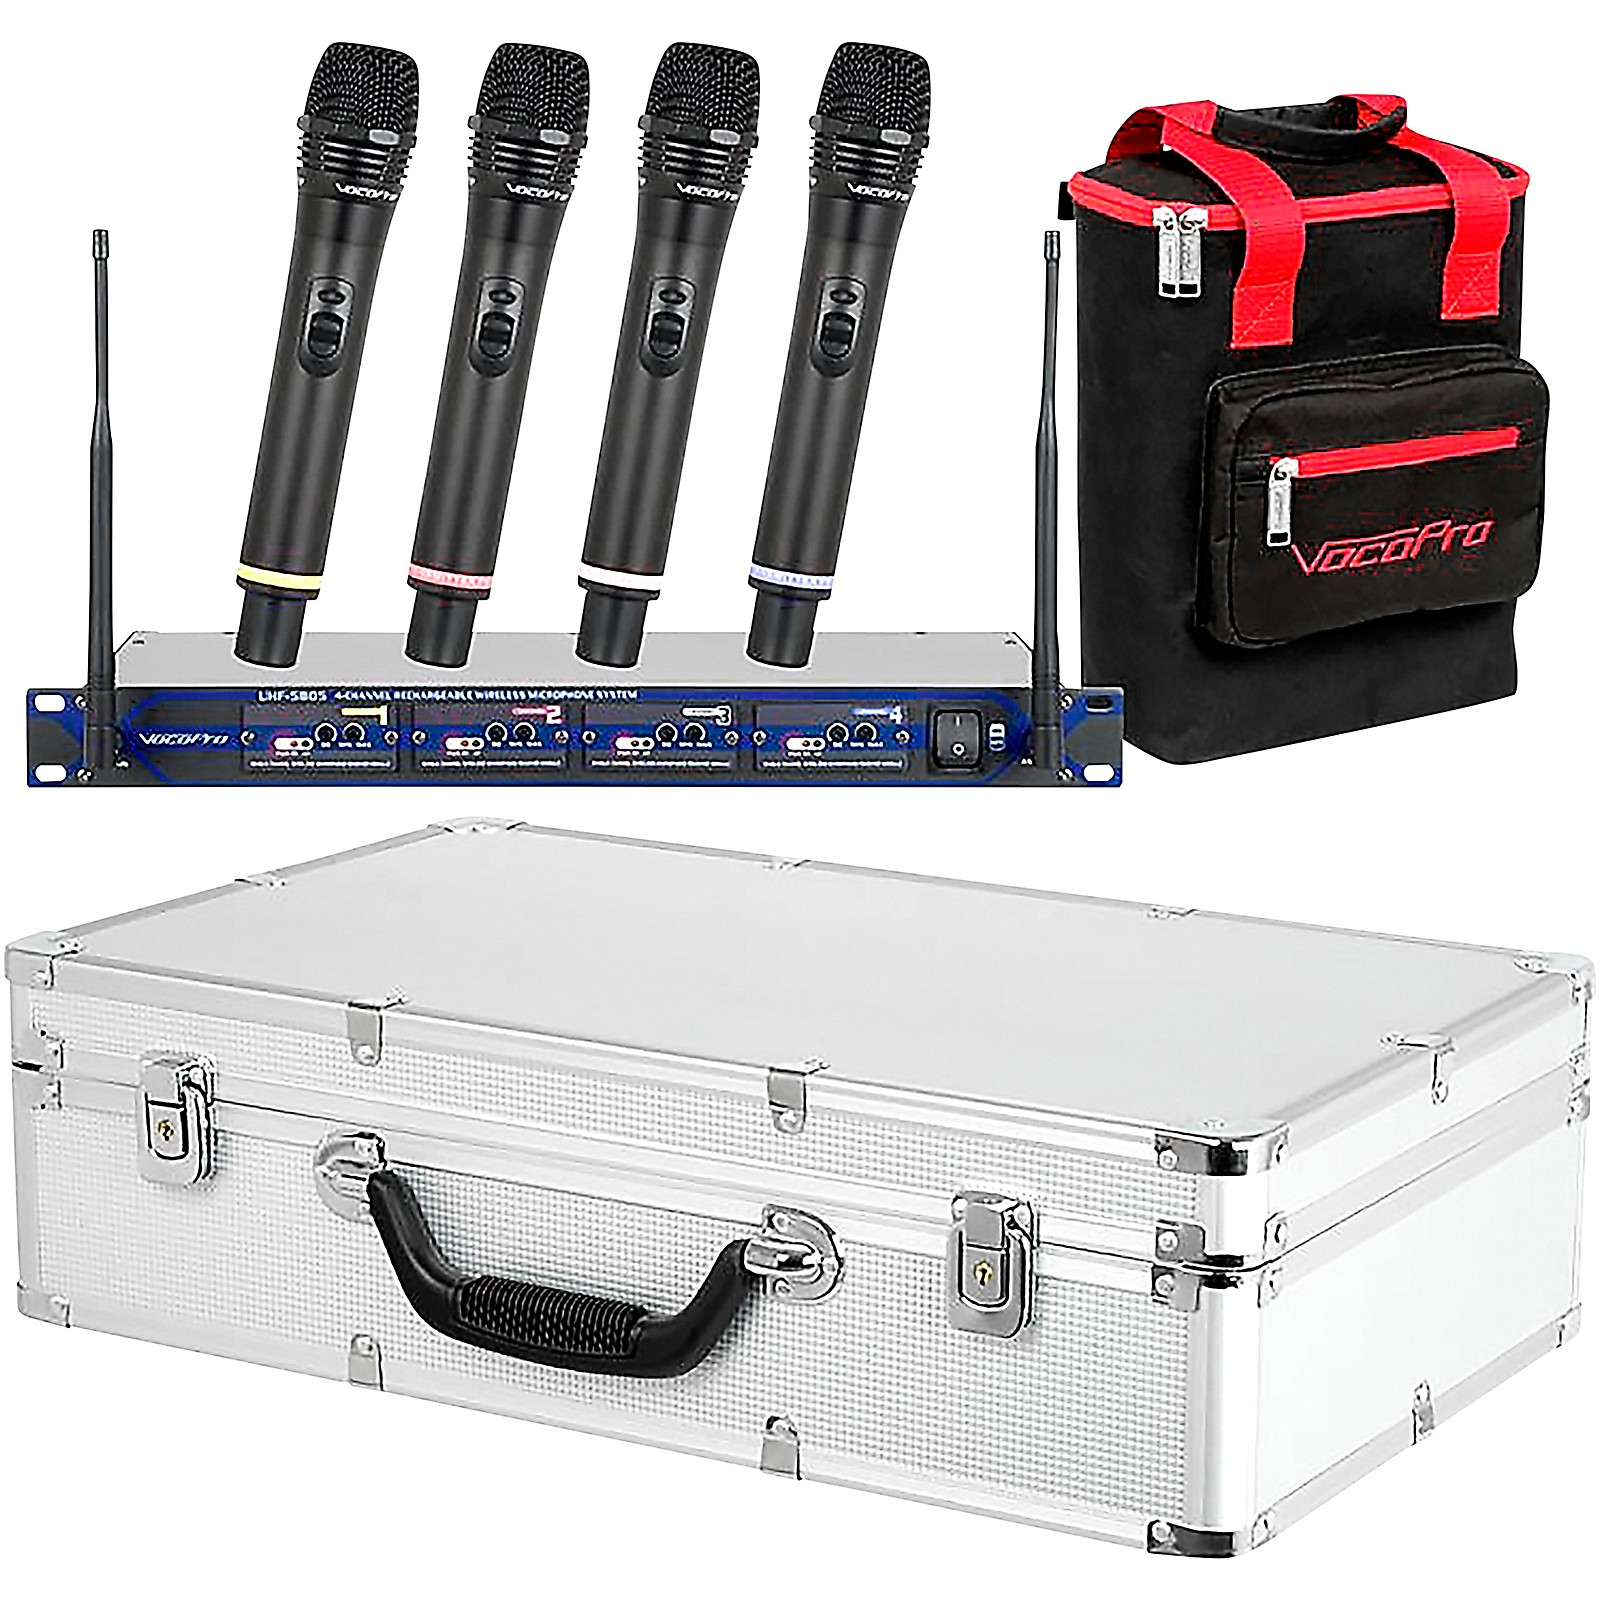 VocoPro UHF-5805 Plus Rechargeable Wireless System with Mic Bag